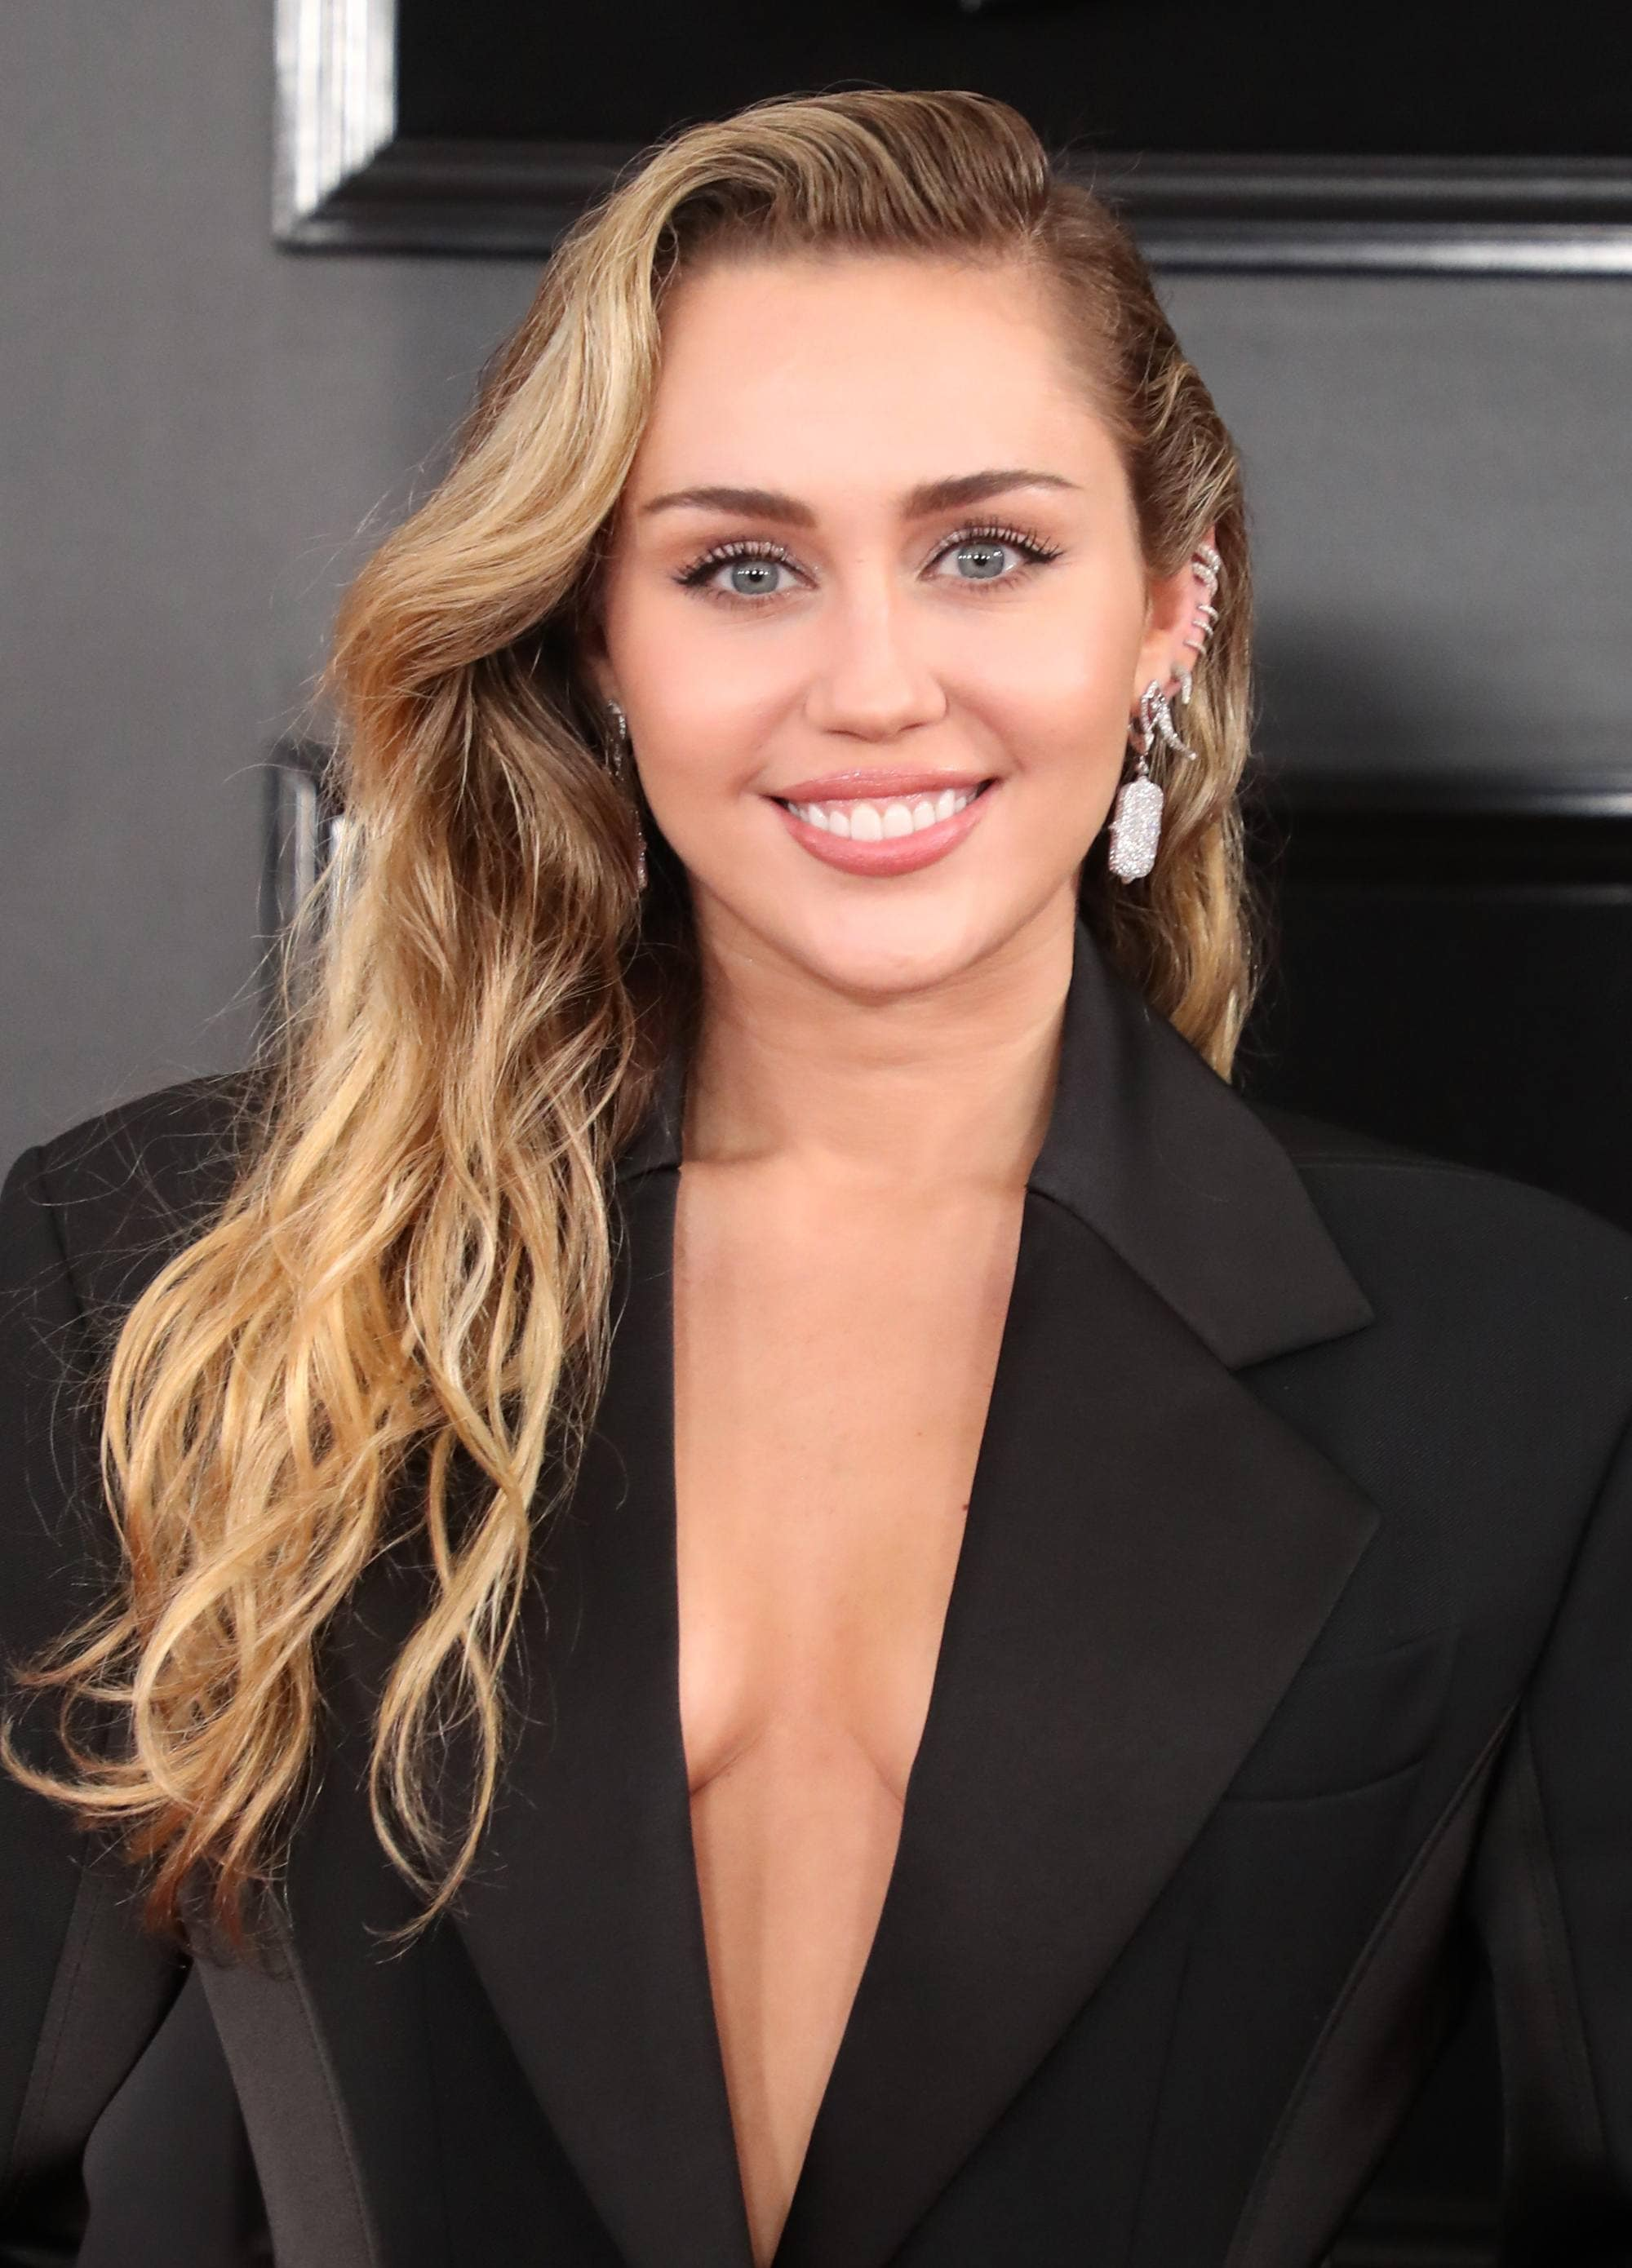 Red carpet hairstyles: Miley Cyrus with softly swept waves on her blonde hair with a black blazer jacket.